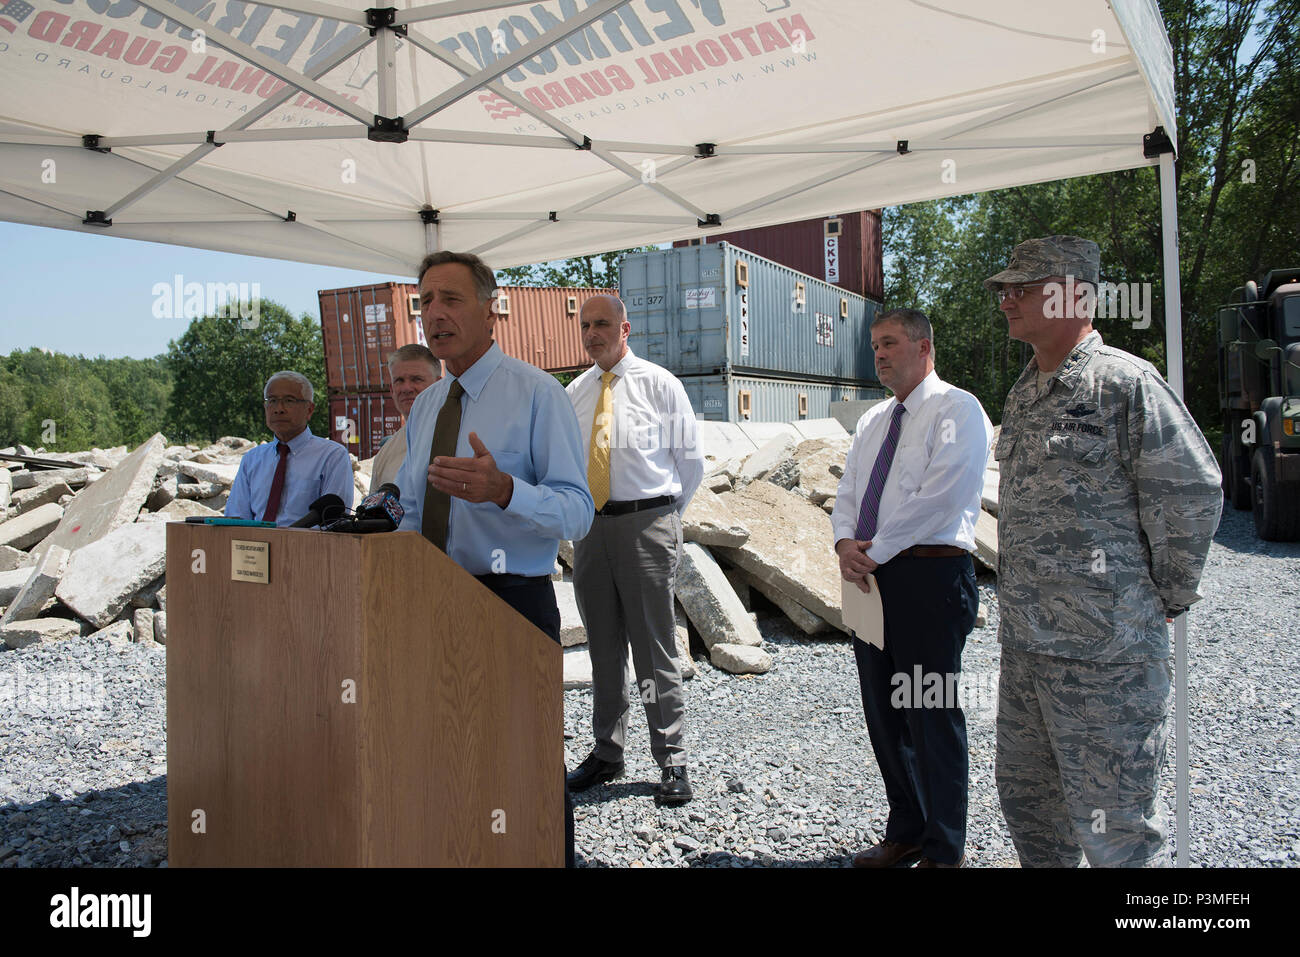 Vermont Governor Peter Shumlin, addresses media during a press conference at Camp Johnson, Colchester, Vt., July 13, 2016. The state of Vermont will be hosting Vigilant Guard 16, a training exercise that enables both state and National Guard resources to respond to multiple, geographically disparate, catastrophic disasters in order to strengthen regional partnerships and validate crisis action plans. (U.S. Air National Guard photo by Tech. Sgt. Sarah Mattison) Stock Photo